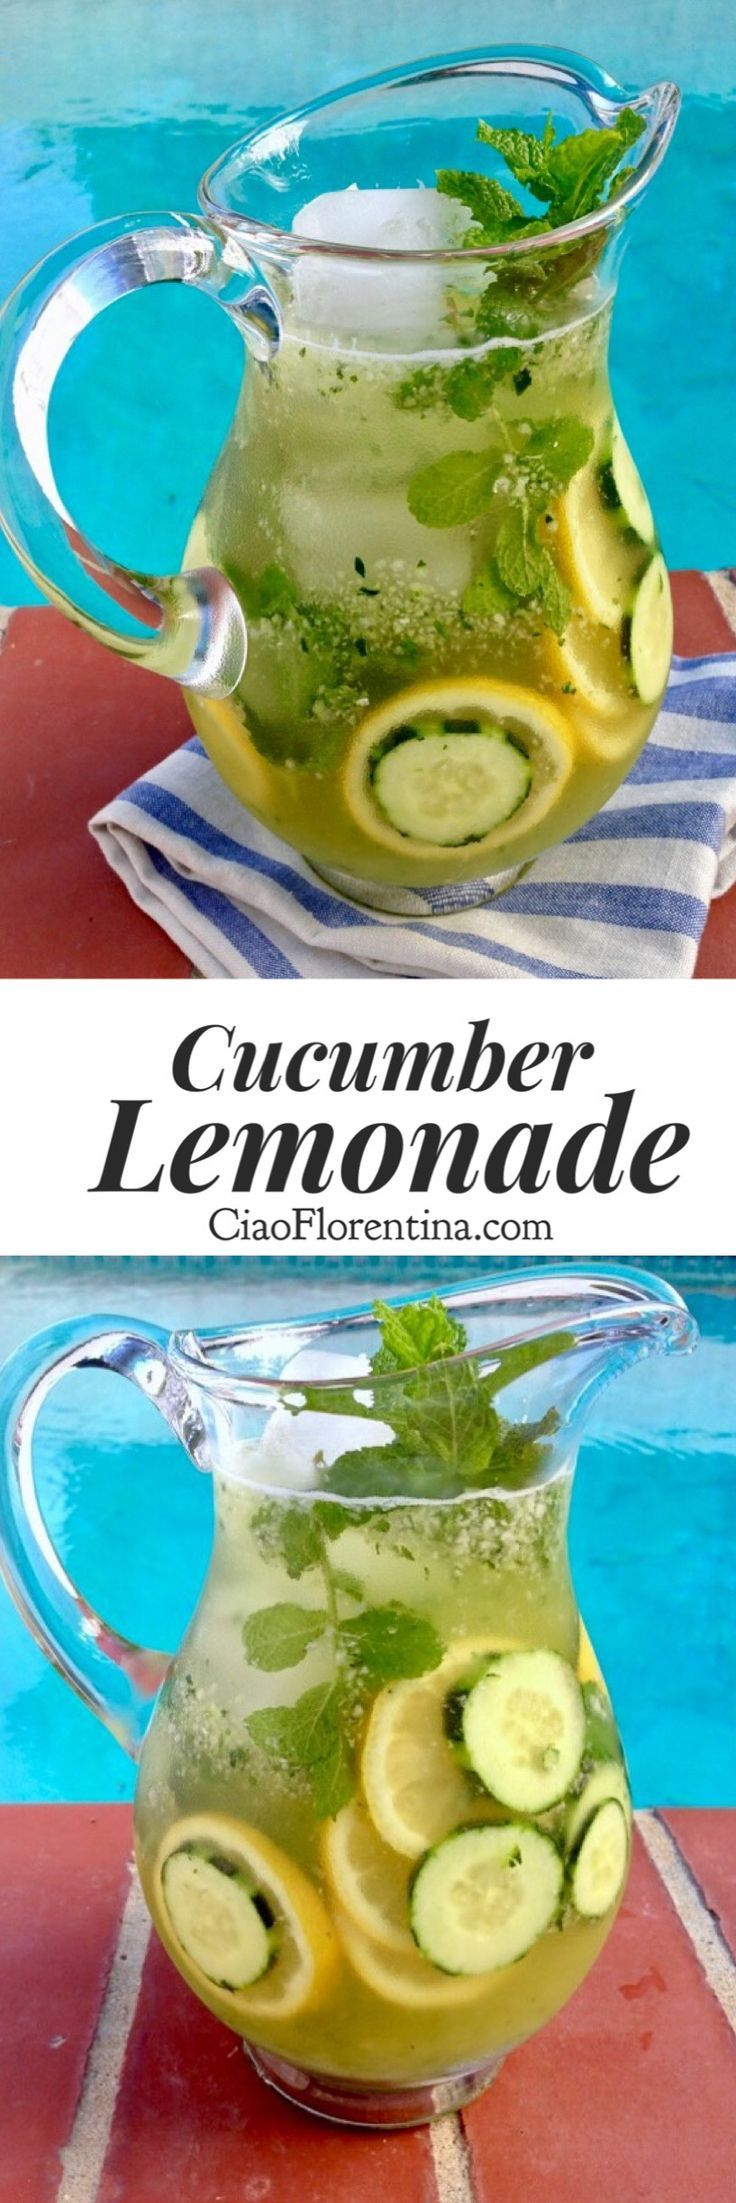 Cucumber Lemonade ~ A healthy cucumber lemonade with mint and honey, spiked with a little vodka. Thirst quenching, and refreshing! | CiaoFlorentina.com @CiaoFlorentina